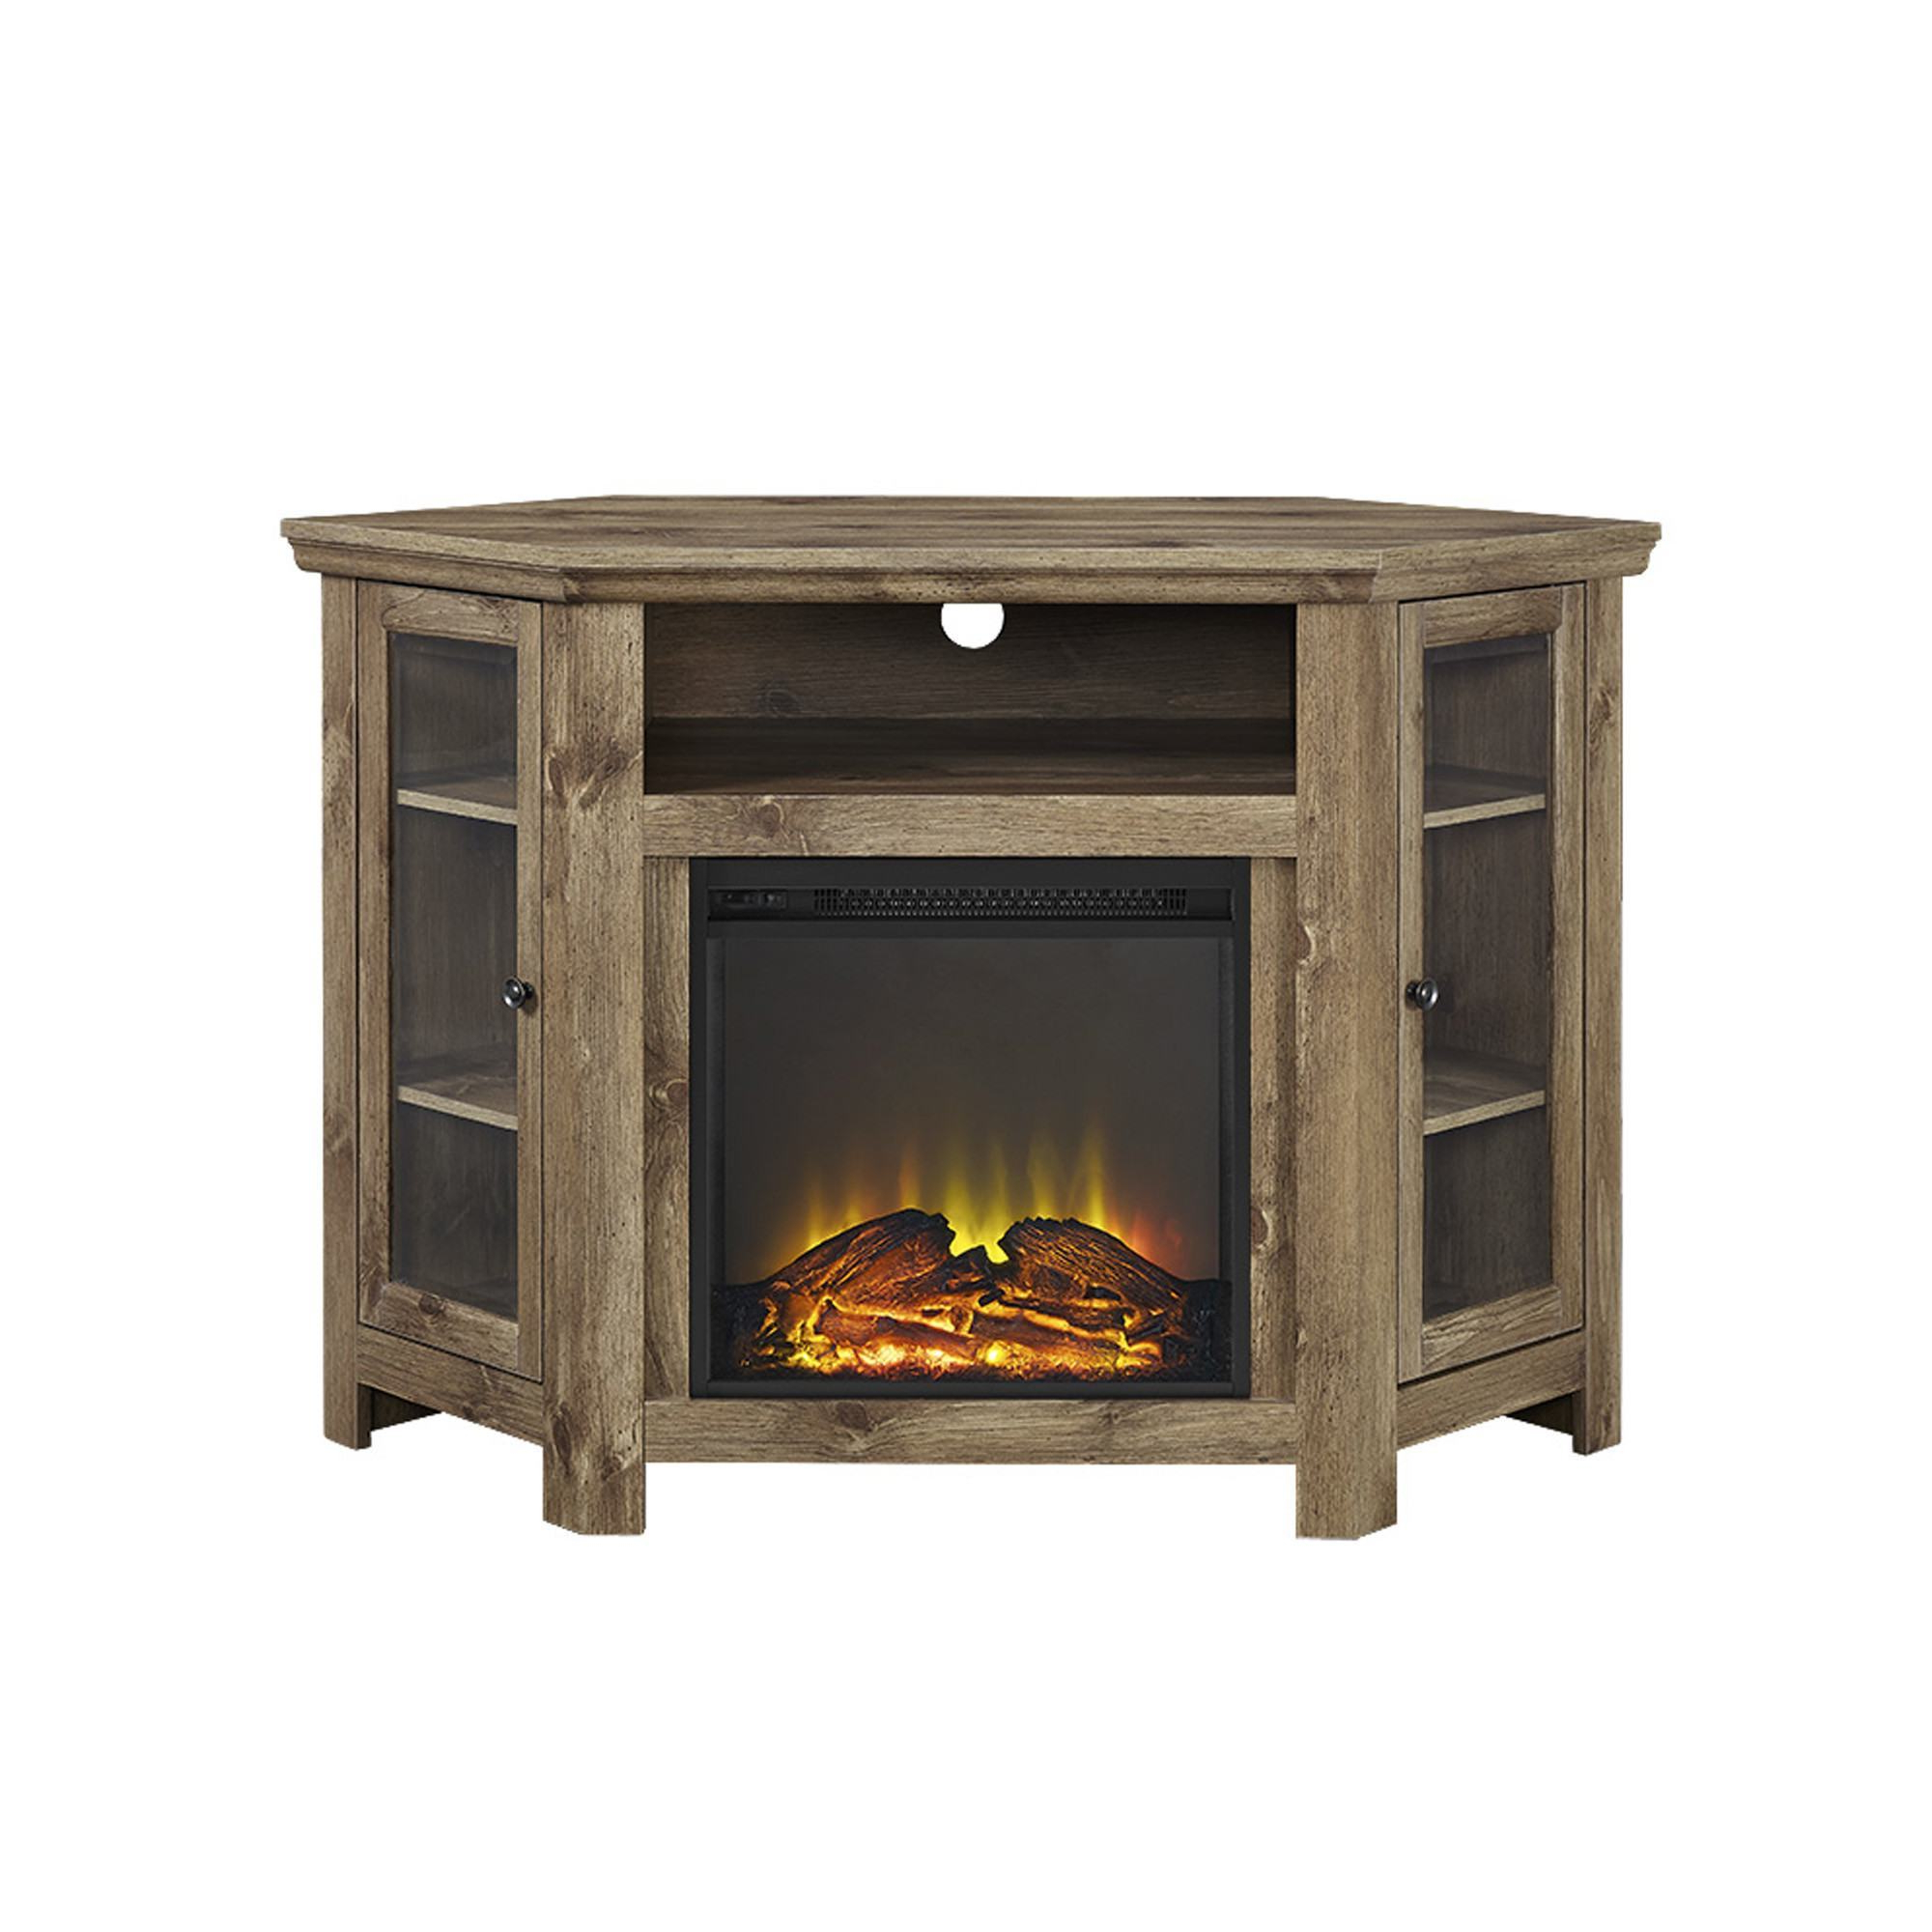 22 Lovely Wayfair Corner Tv Stand For Living Room Interior Decor With Newest Wayfair Corner Tv Stands (View 2 of 20)